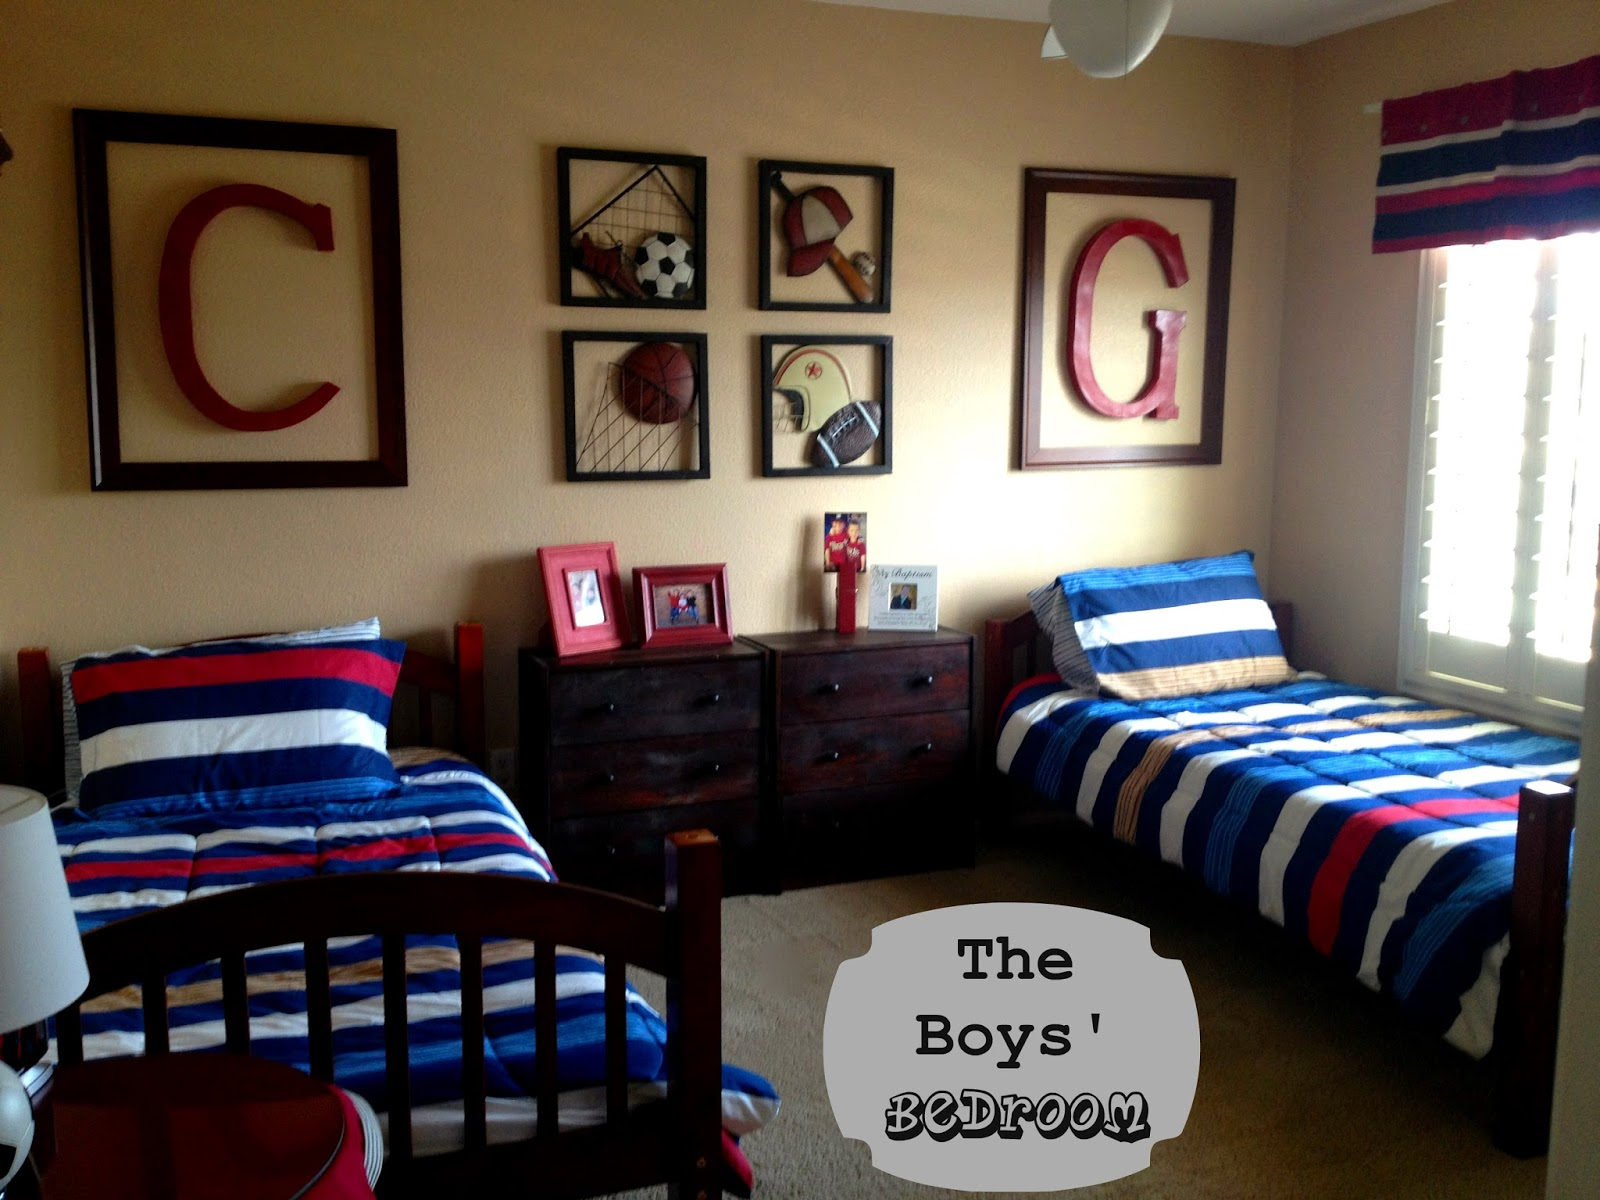 Marci Coombs: The Boys' Sports Themed Bedroom